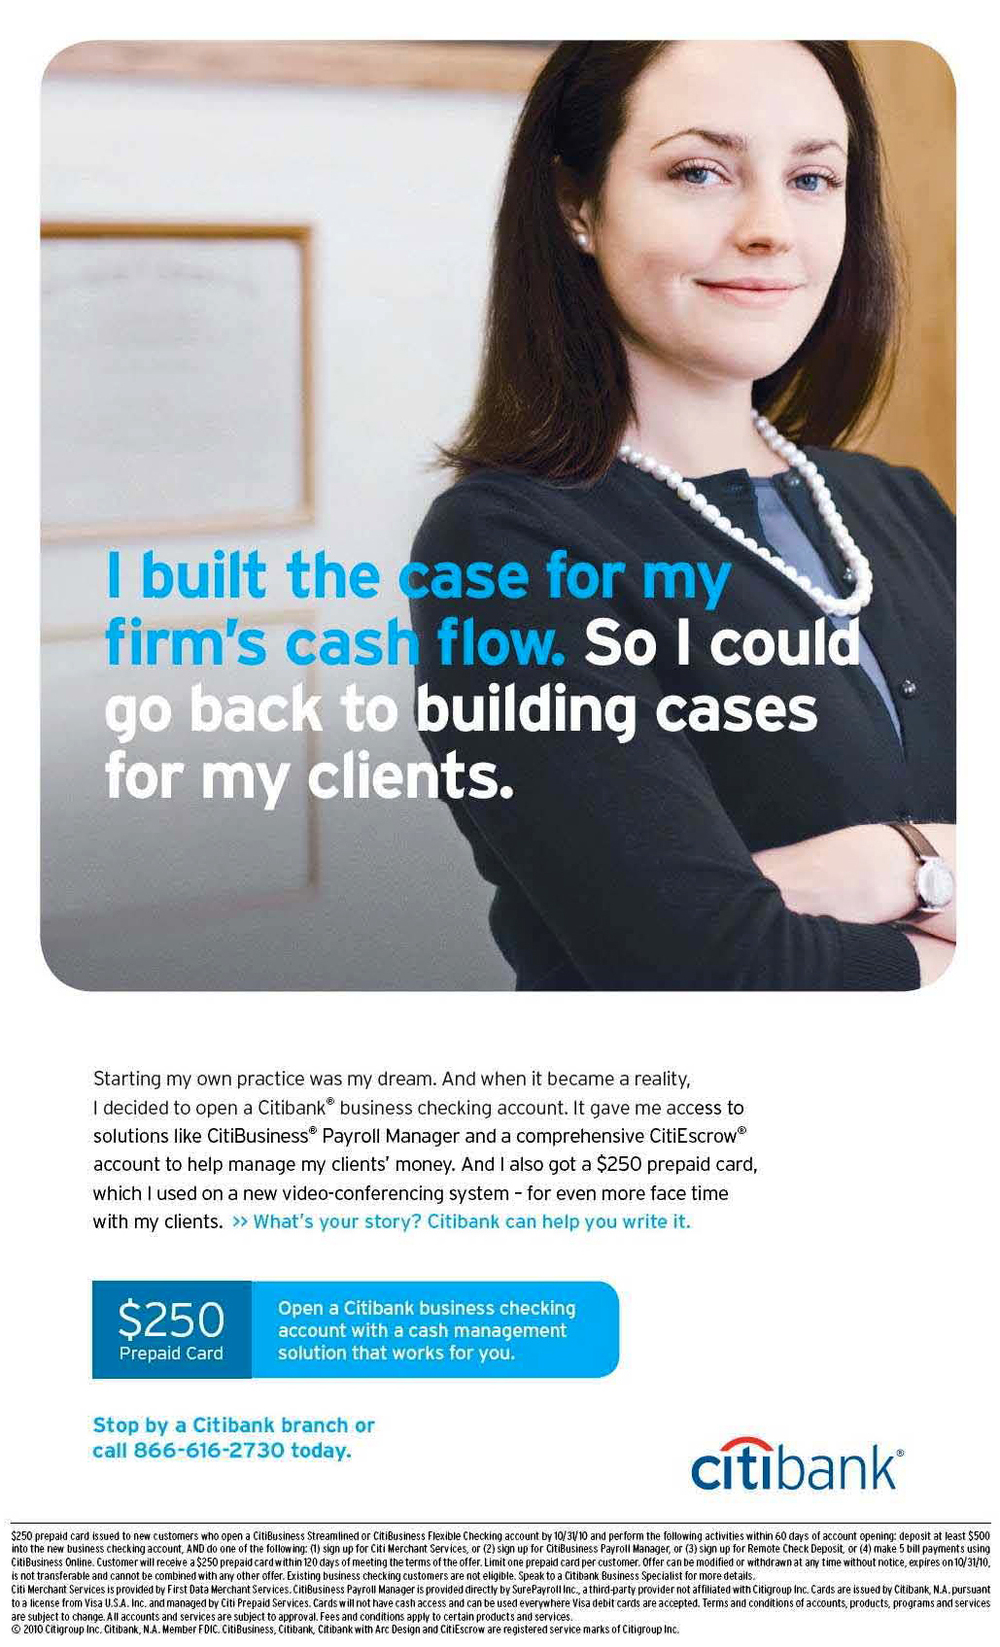 Citibank_Business_Cash_Gift_Ad_09212010-copy.jpg